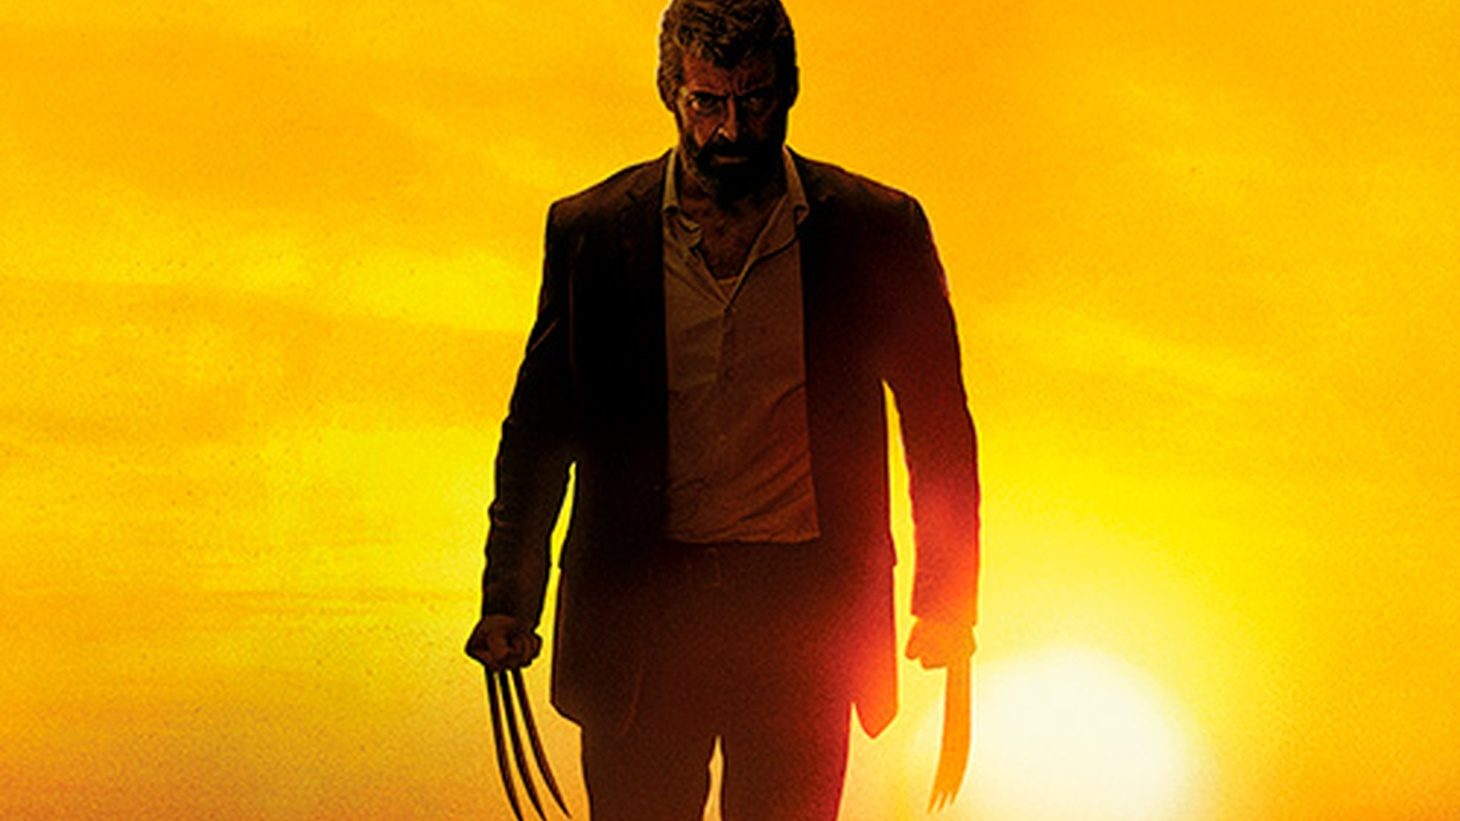 """The slashing starts early in Logan – no surprise, since it's an R-rated action thriller about Wolverine, also known as Logan, the """"X-Men"""" character with the tortured psyche and retractable claws."""